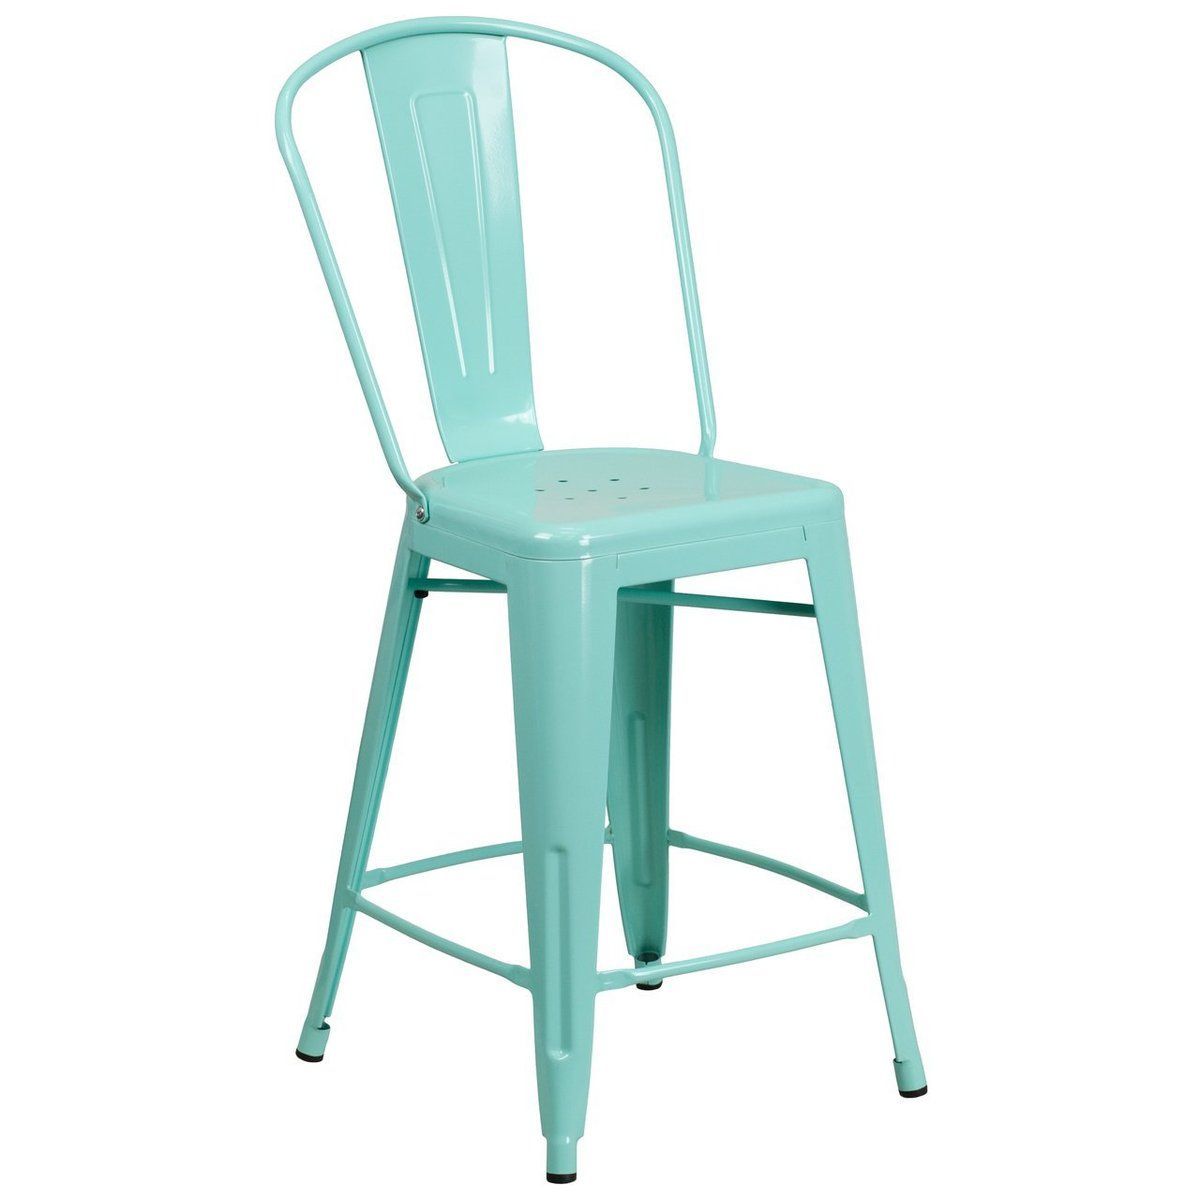 The High Back Bistro Style Counter Stool Will Give Your Dining Room Or Bar Decor A Cool Retro Vintage Fee In 2020 Counter Height Stools Outdoor Stools Flash Furniture